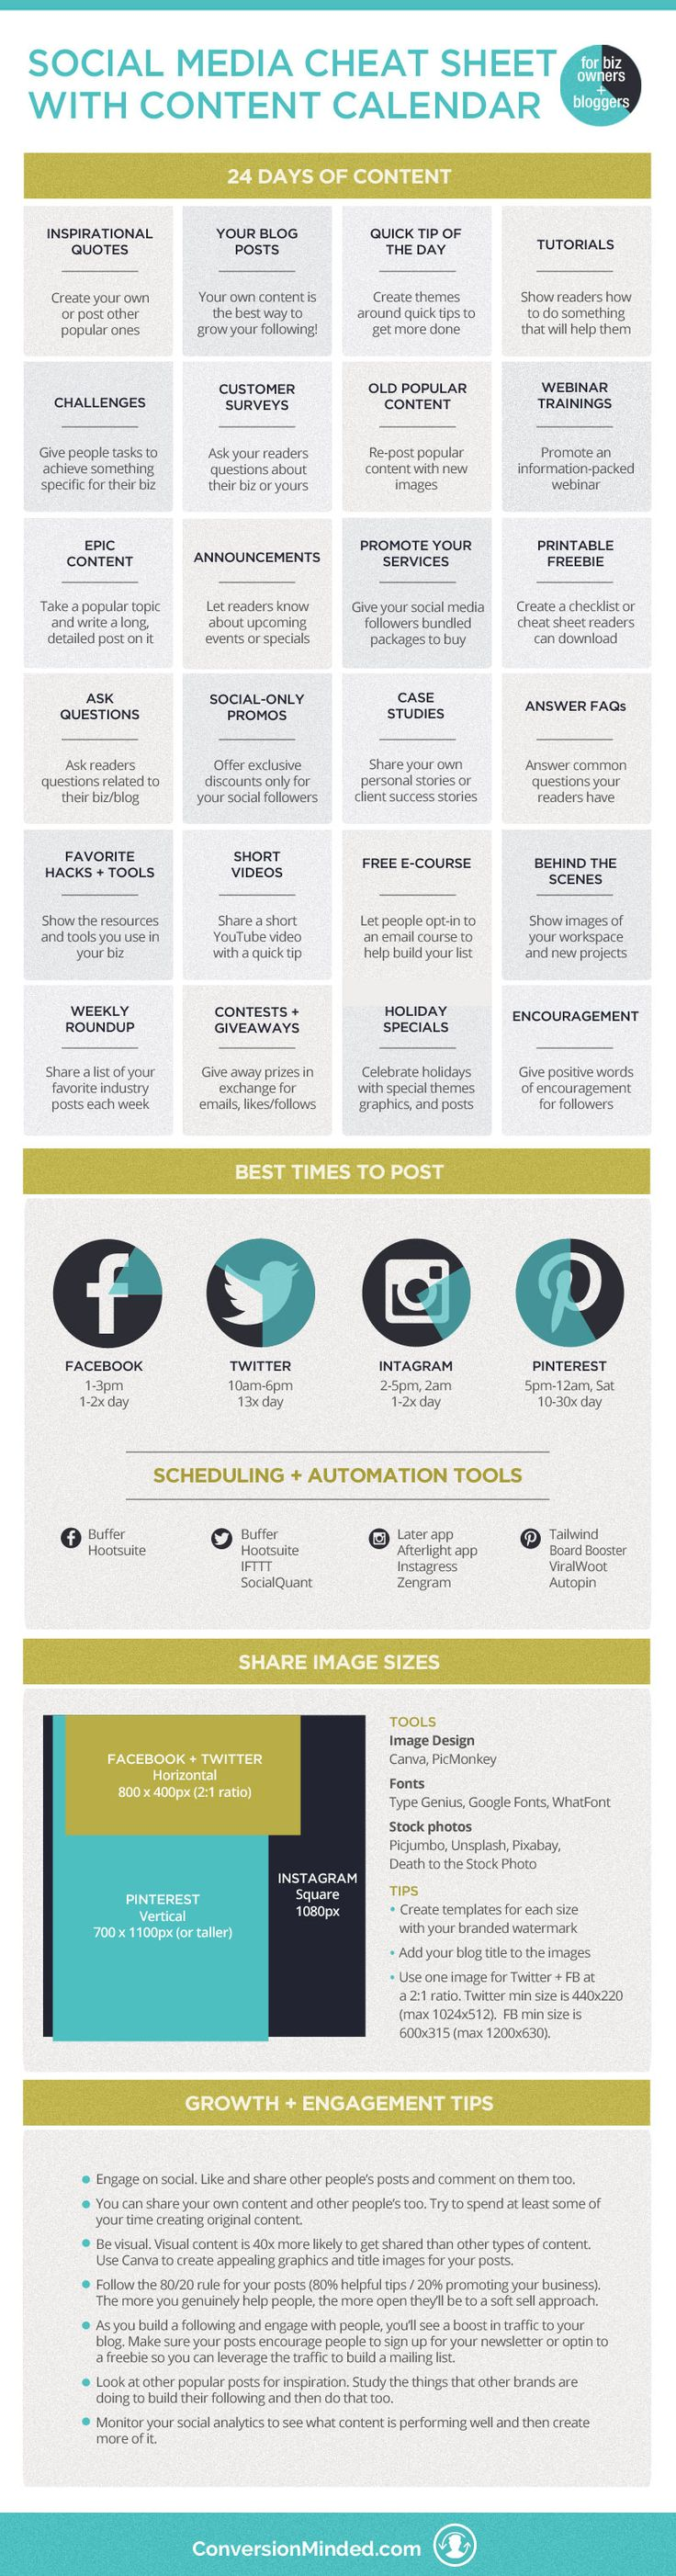 """Love, love this infographic that Social Media Today included in their article, """"Social Media Cheat Sheet: What and When to Share for Best Results."""" Click on infographic to read article."""